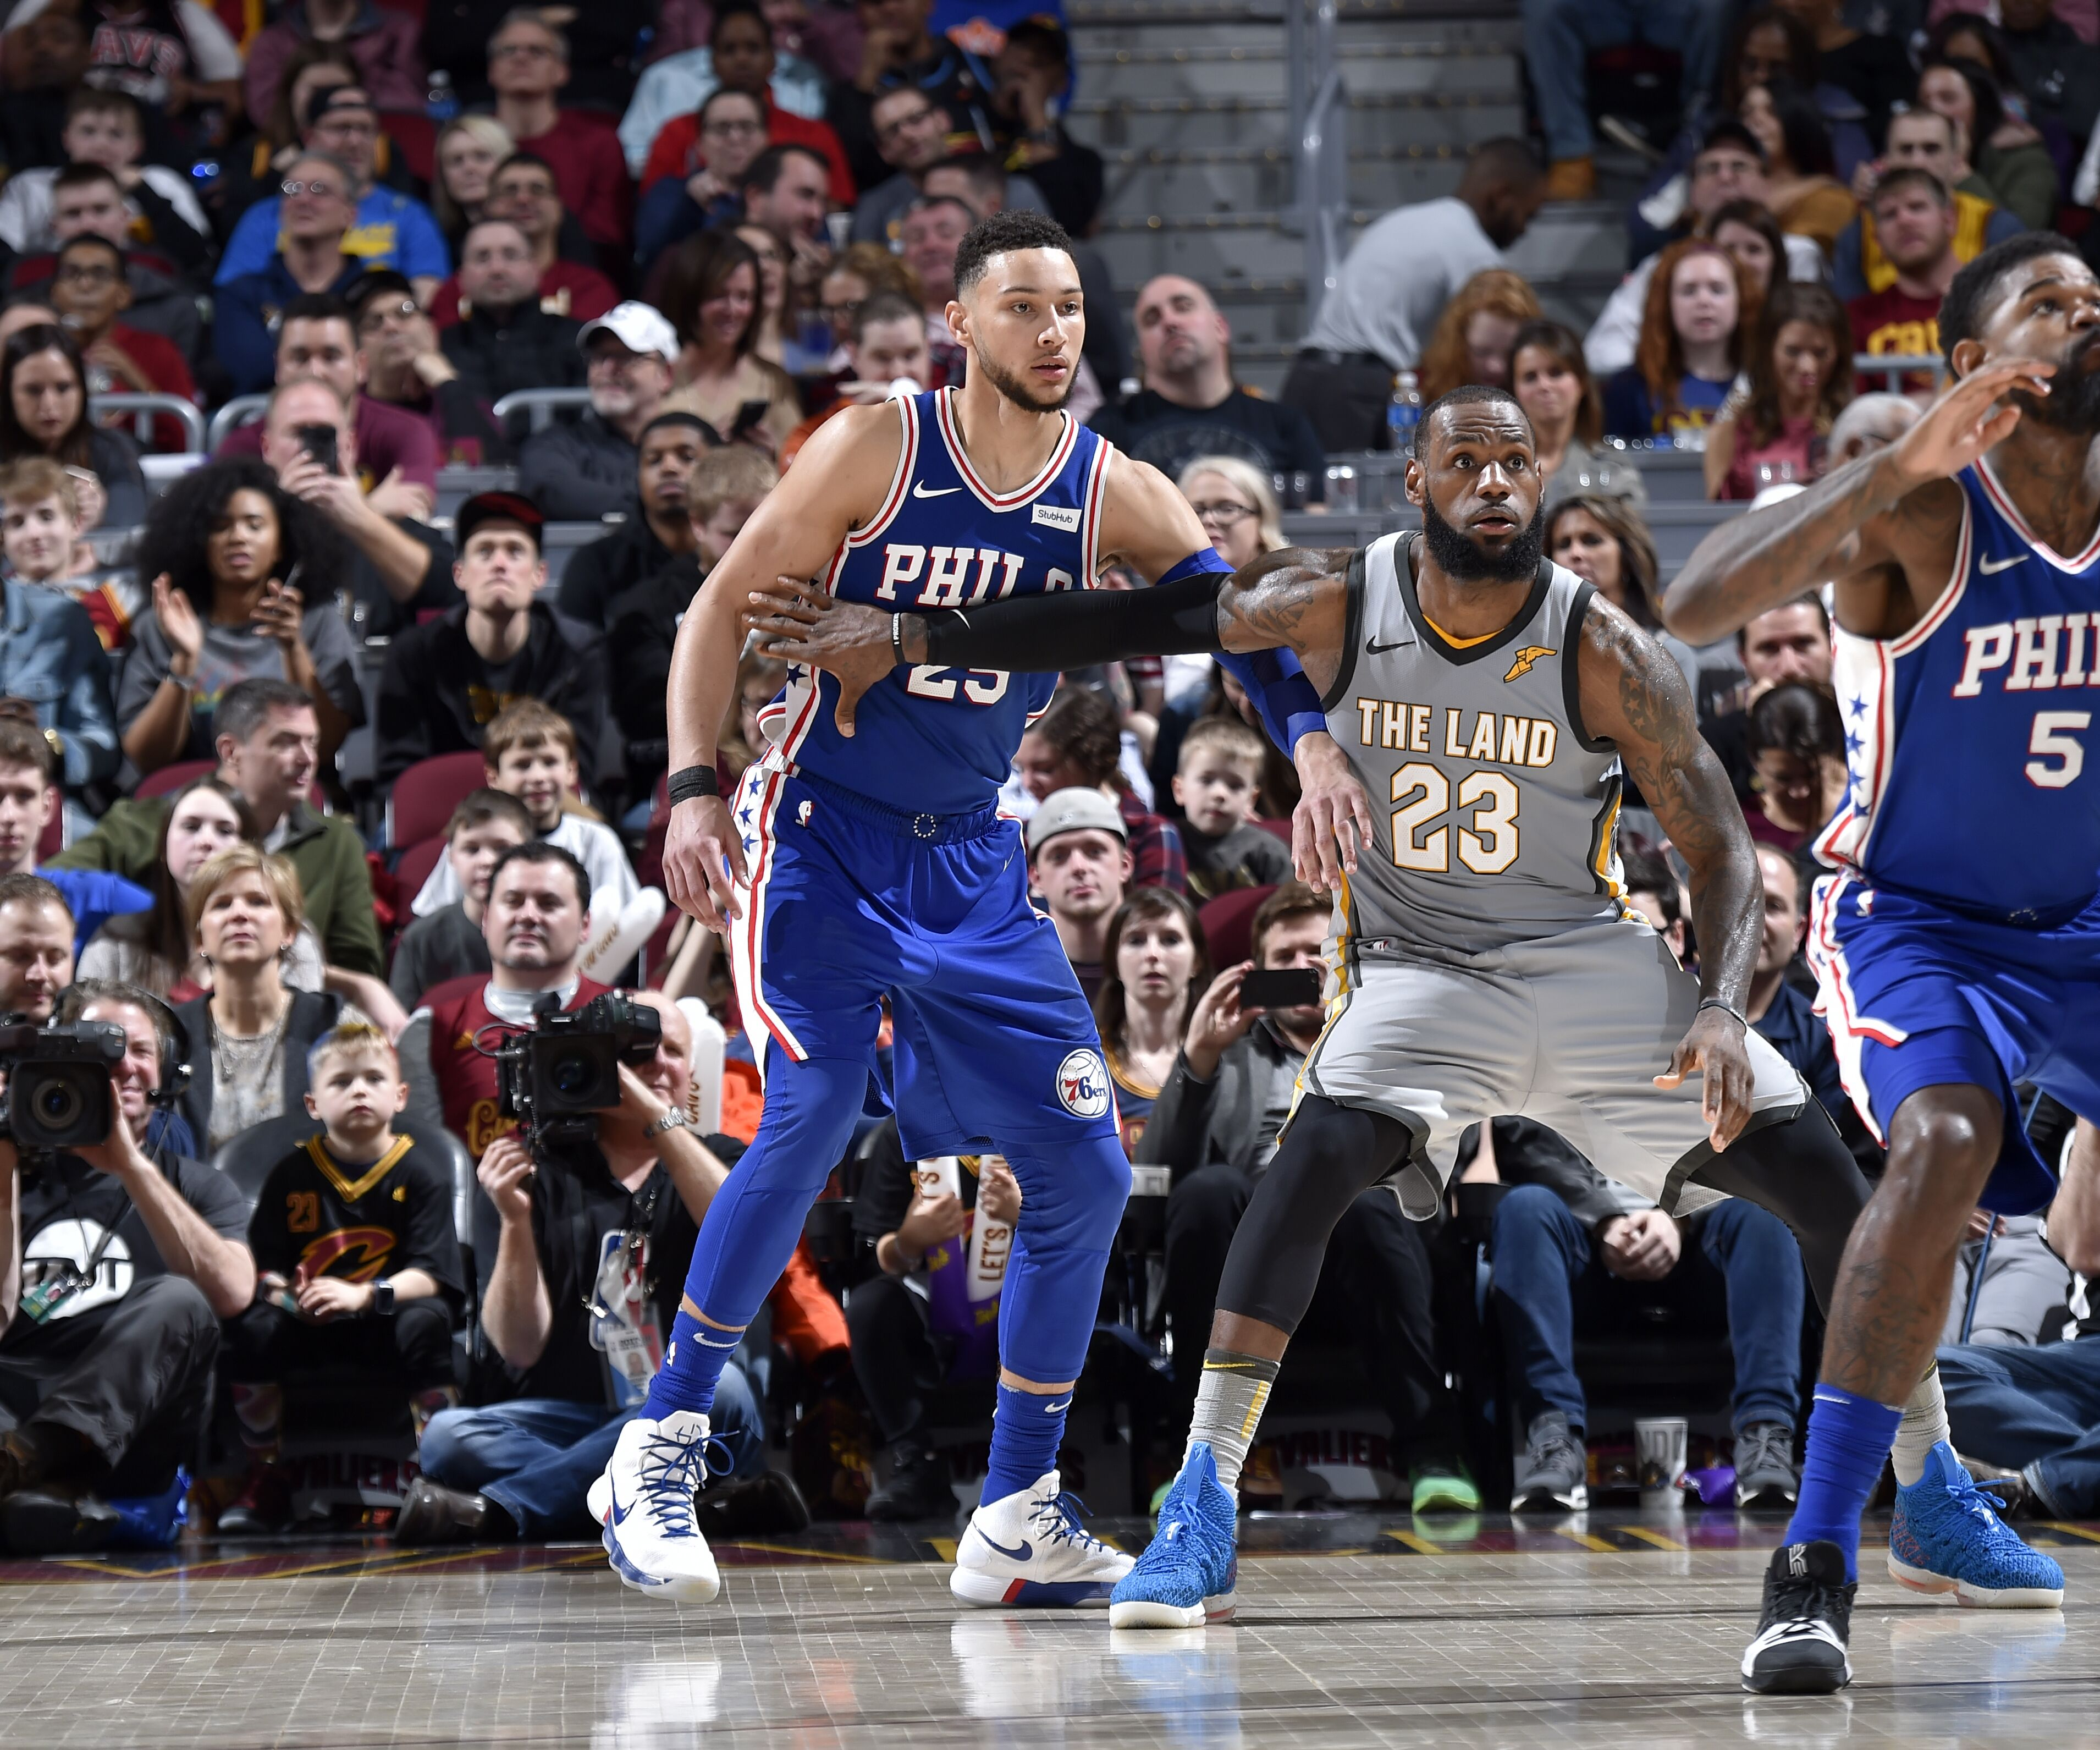 Image result for NBA playoff race: All seeds up for grabs in wild East, West conferences